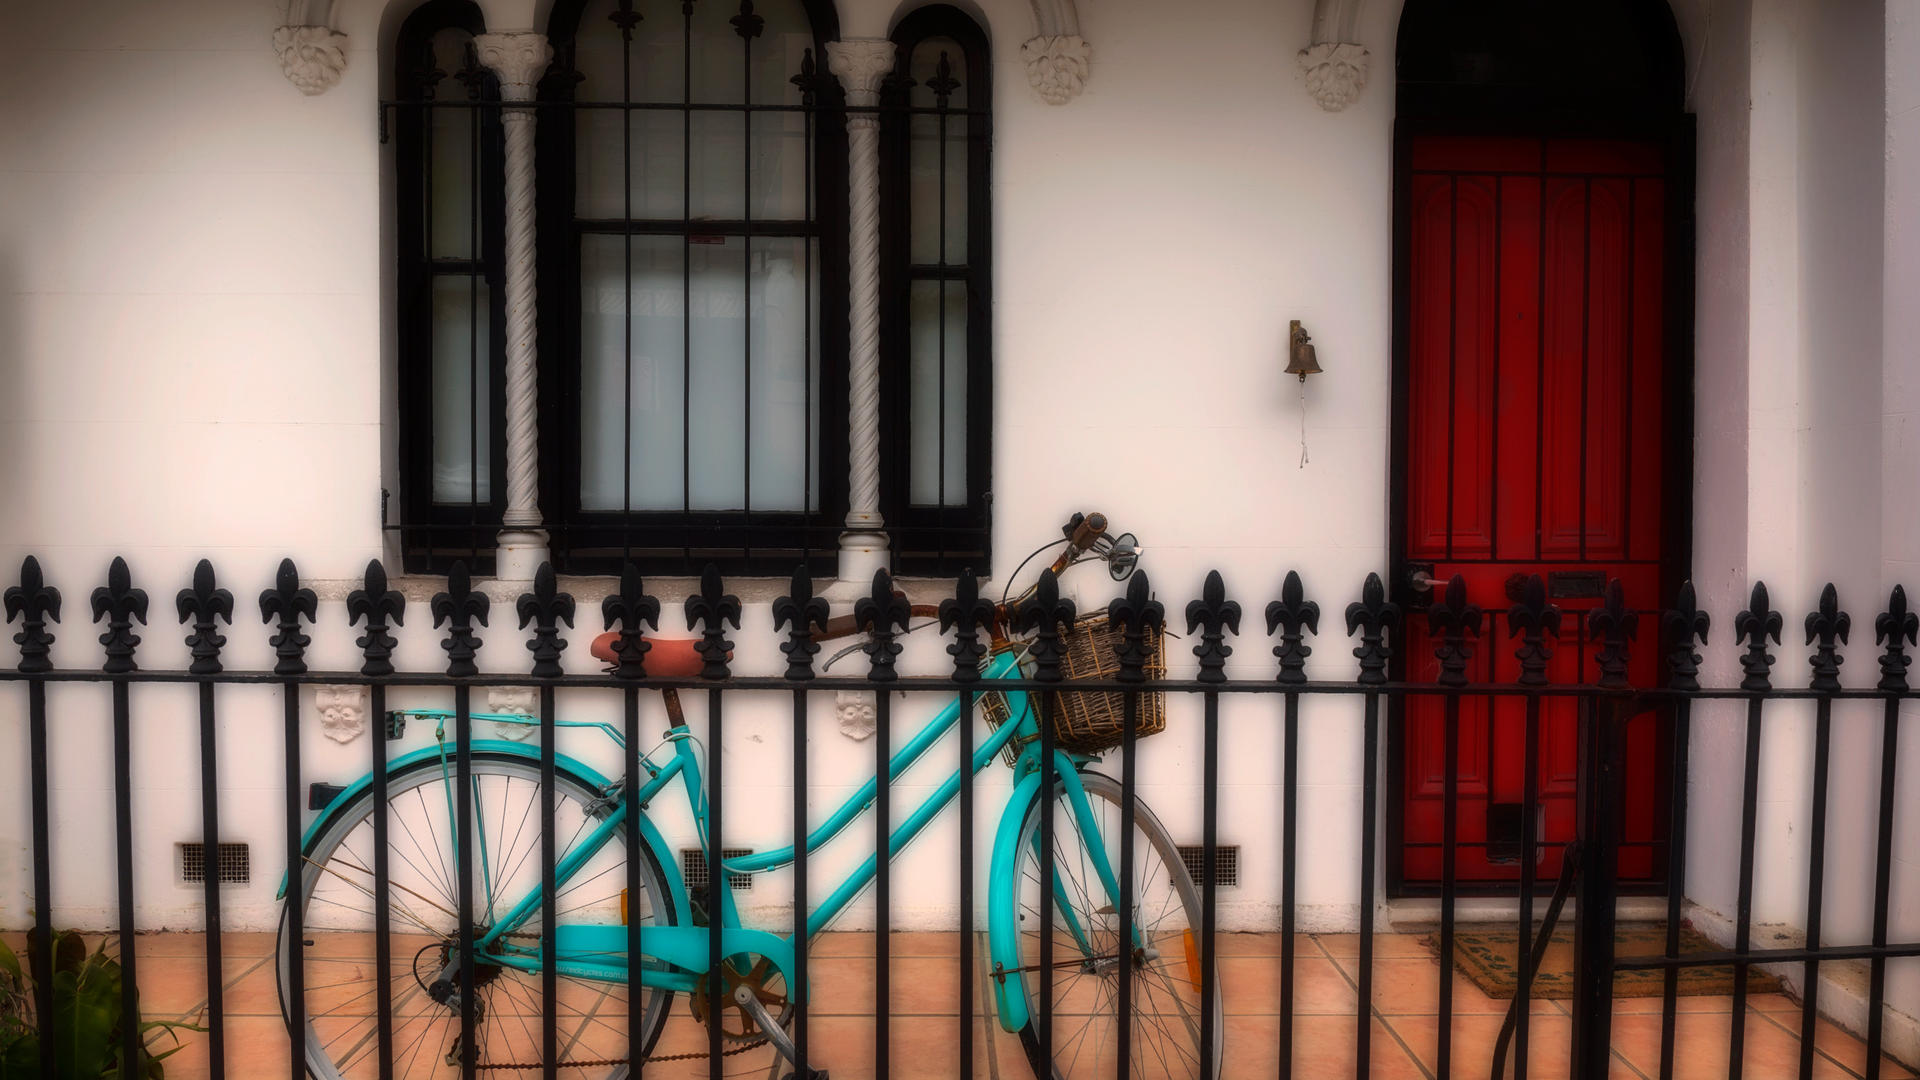 Don_03T3_Bicycle_on_the_Porch